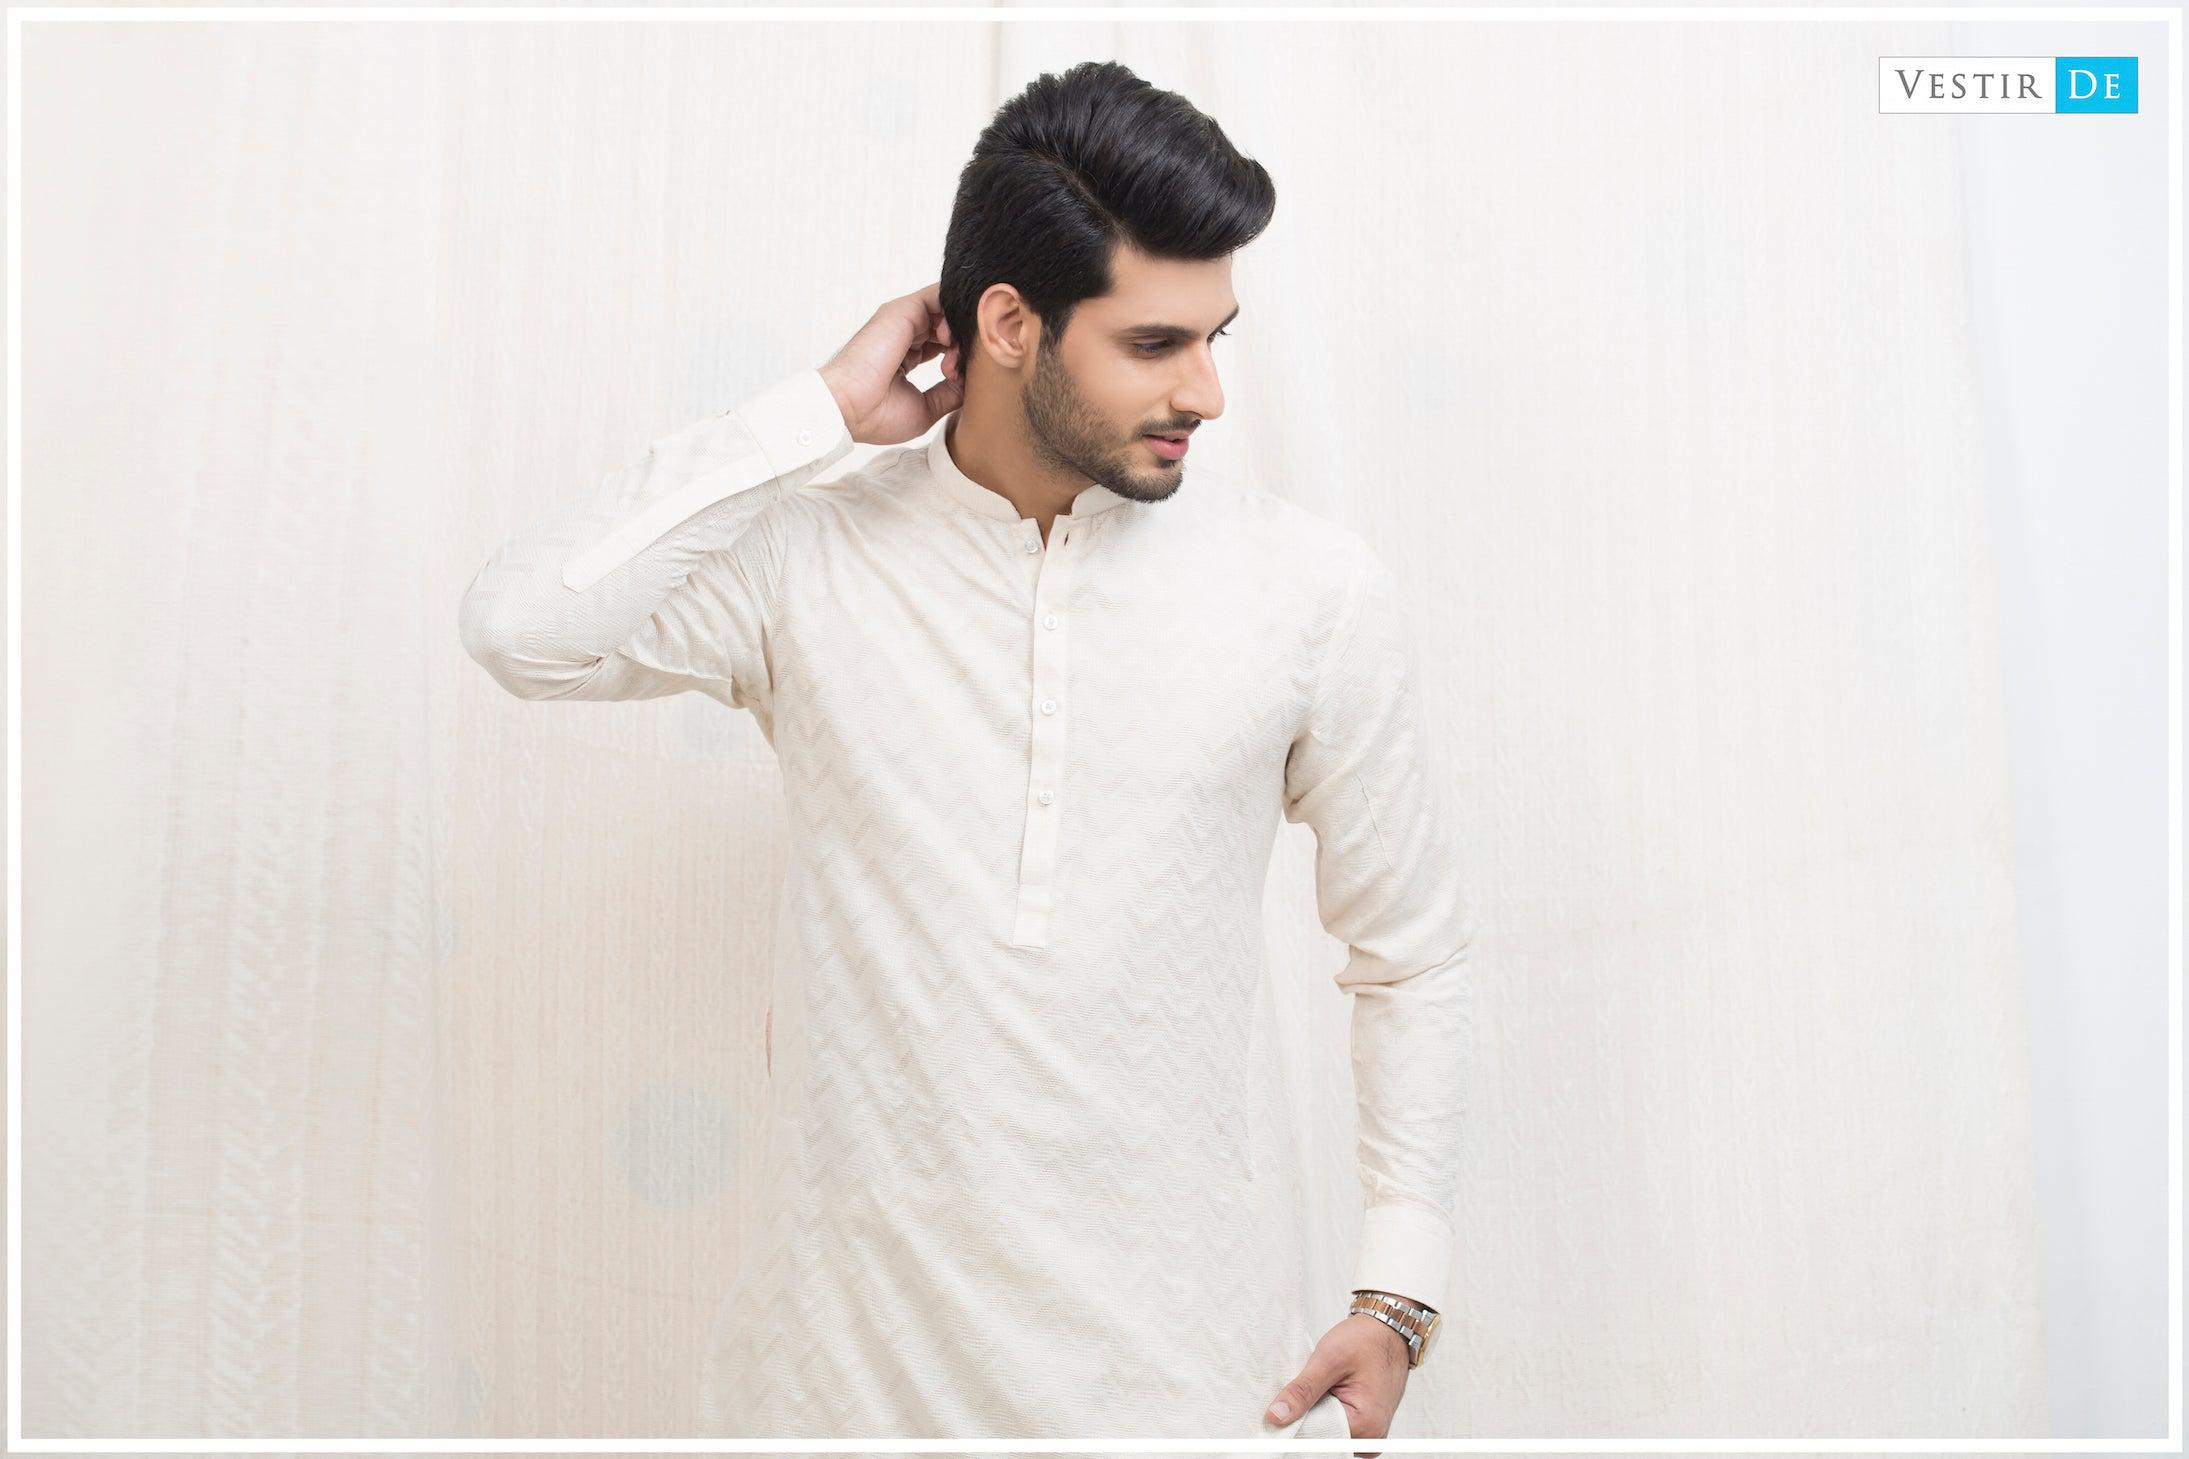 Creamy Textured Cotton Kurta - Vestir De